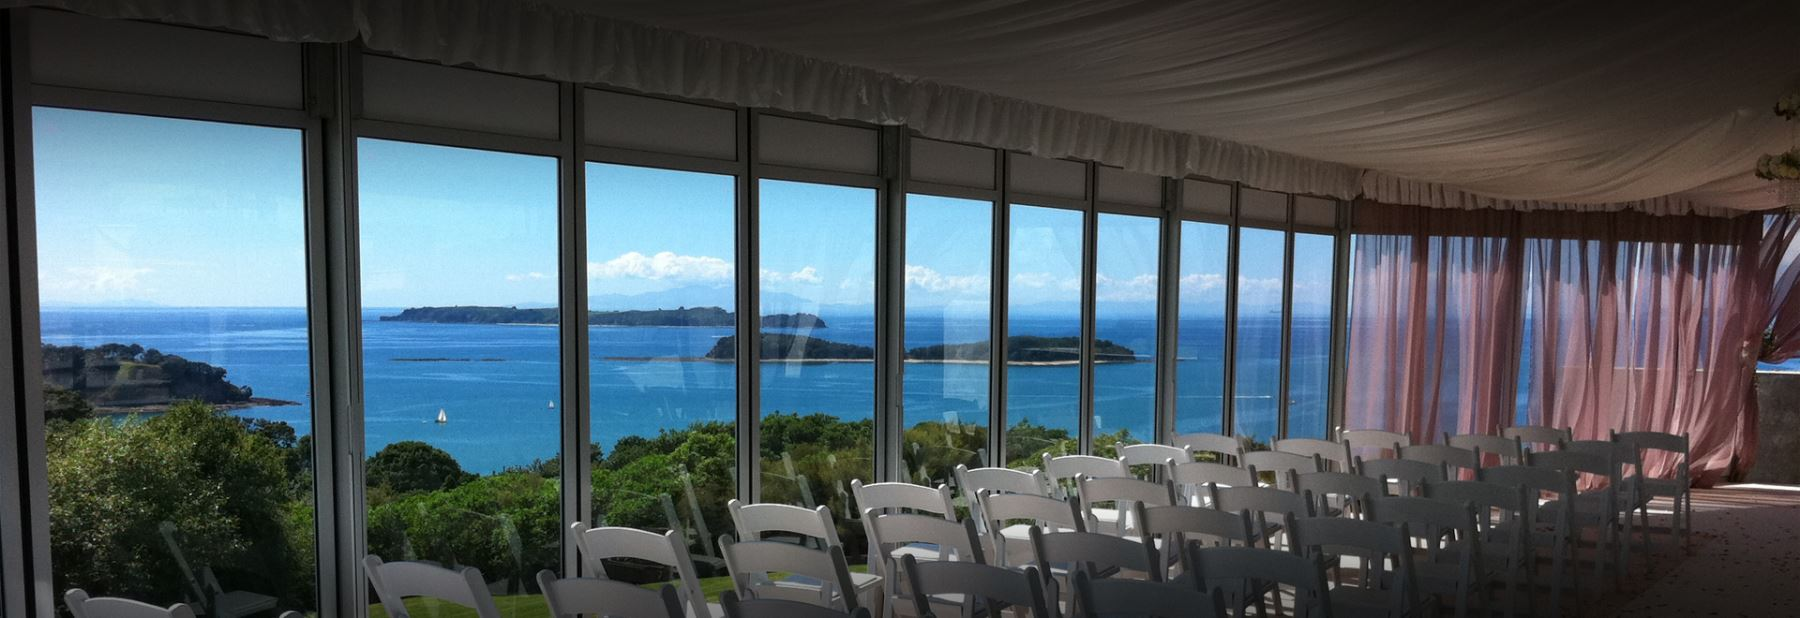 Platinum Hire - Wedding Furniture Hire Auckland